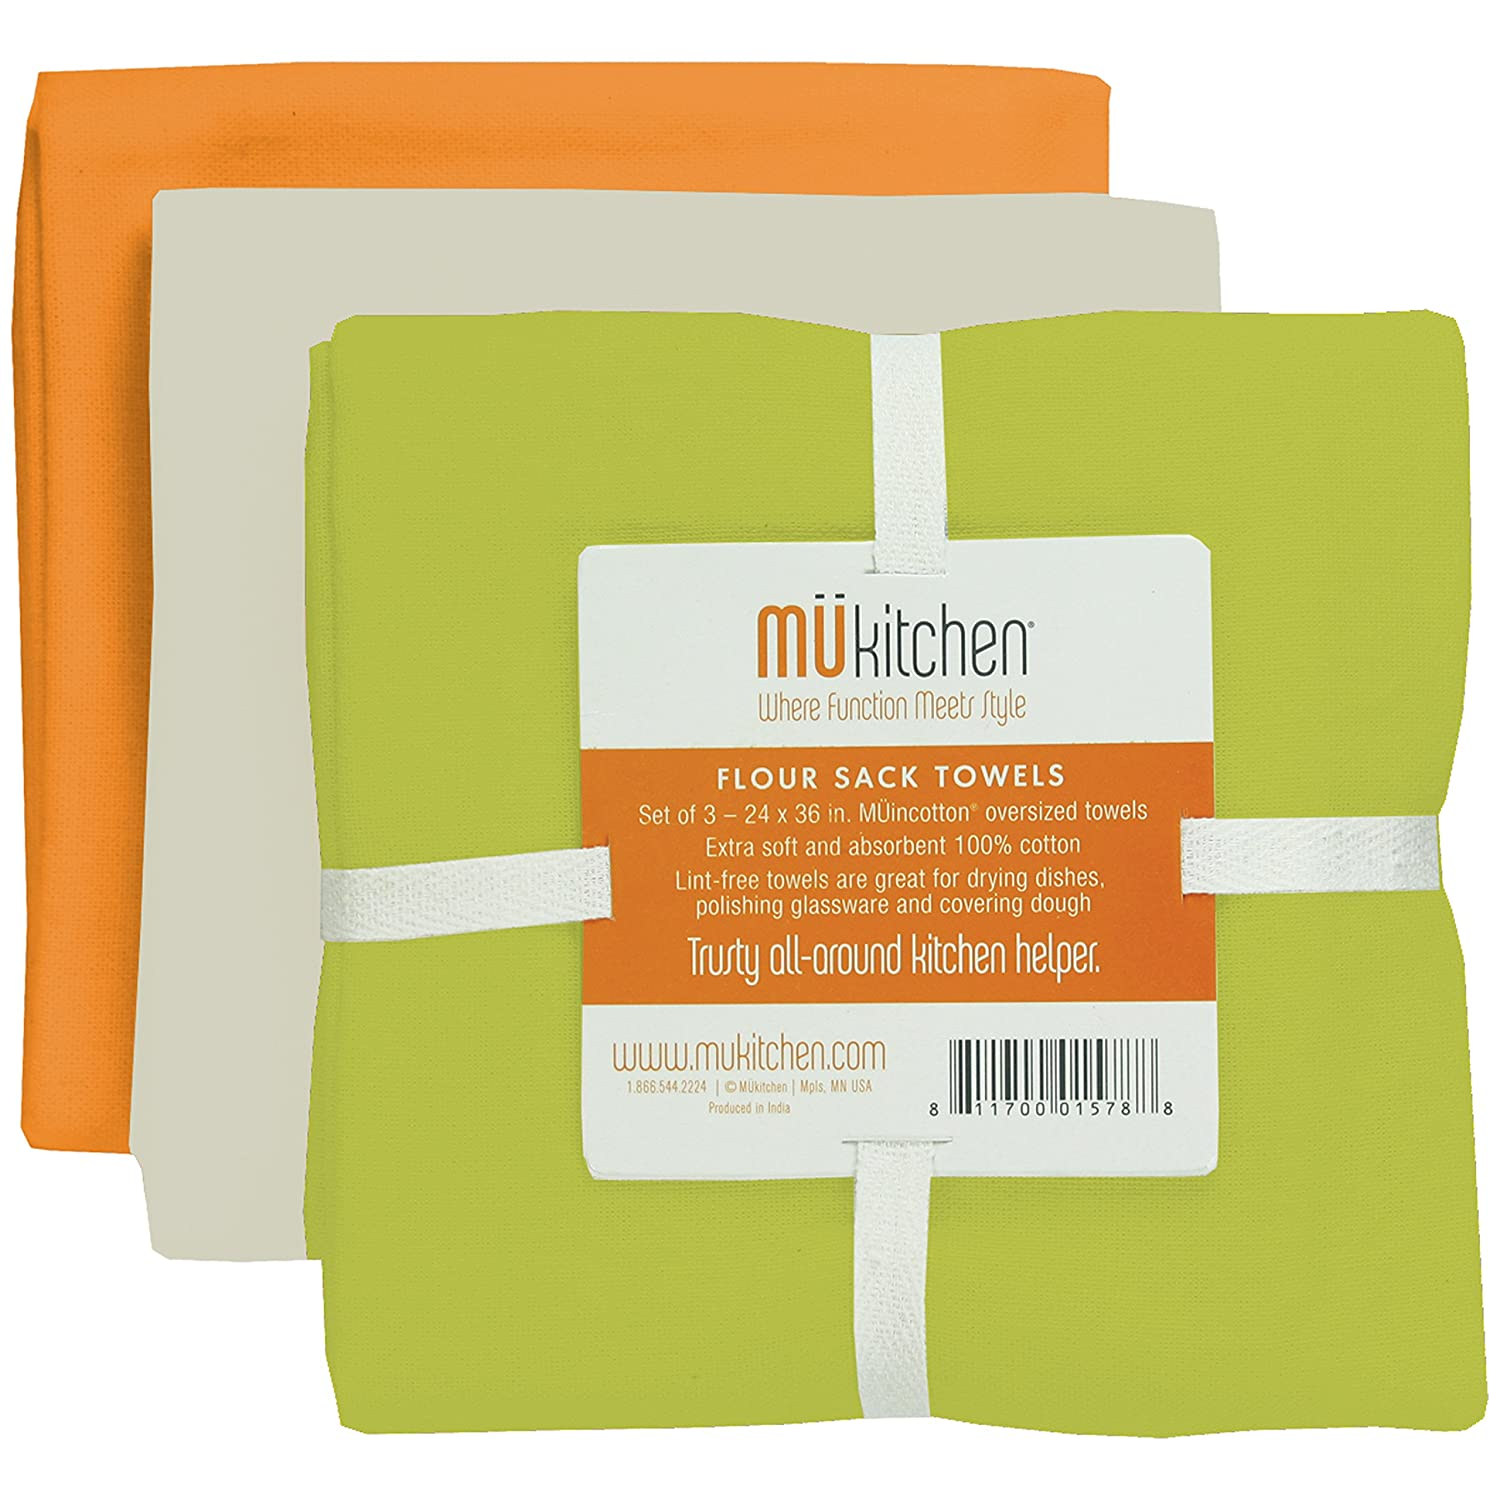 MUkitchen Flour Sack Towel, 24 by 36-Inches, Set of 3, Meadow 6603-1674